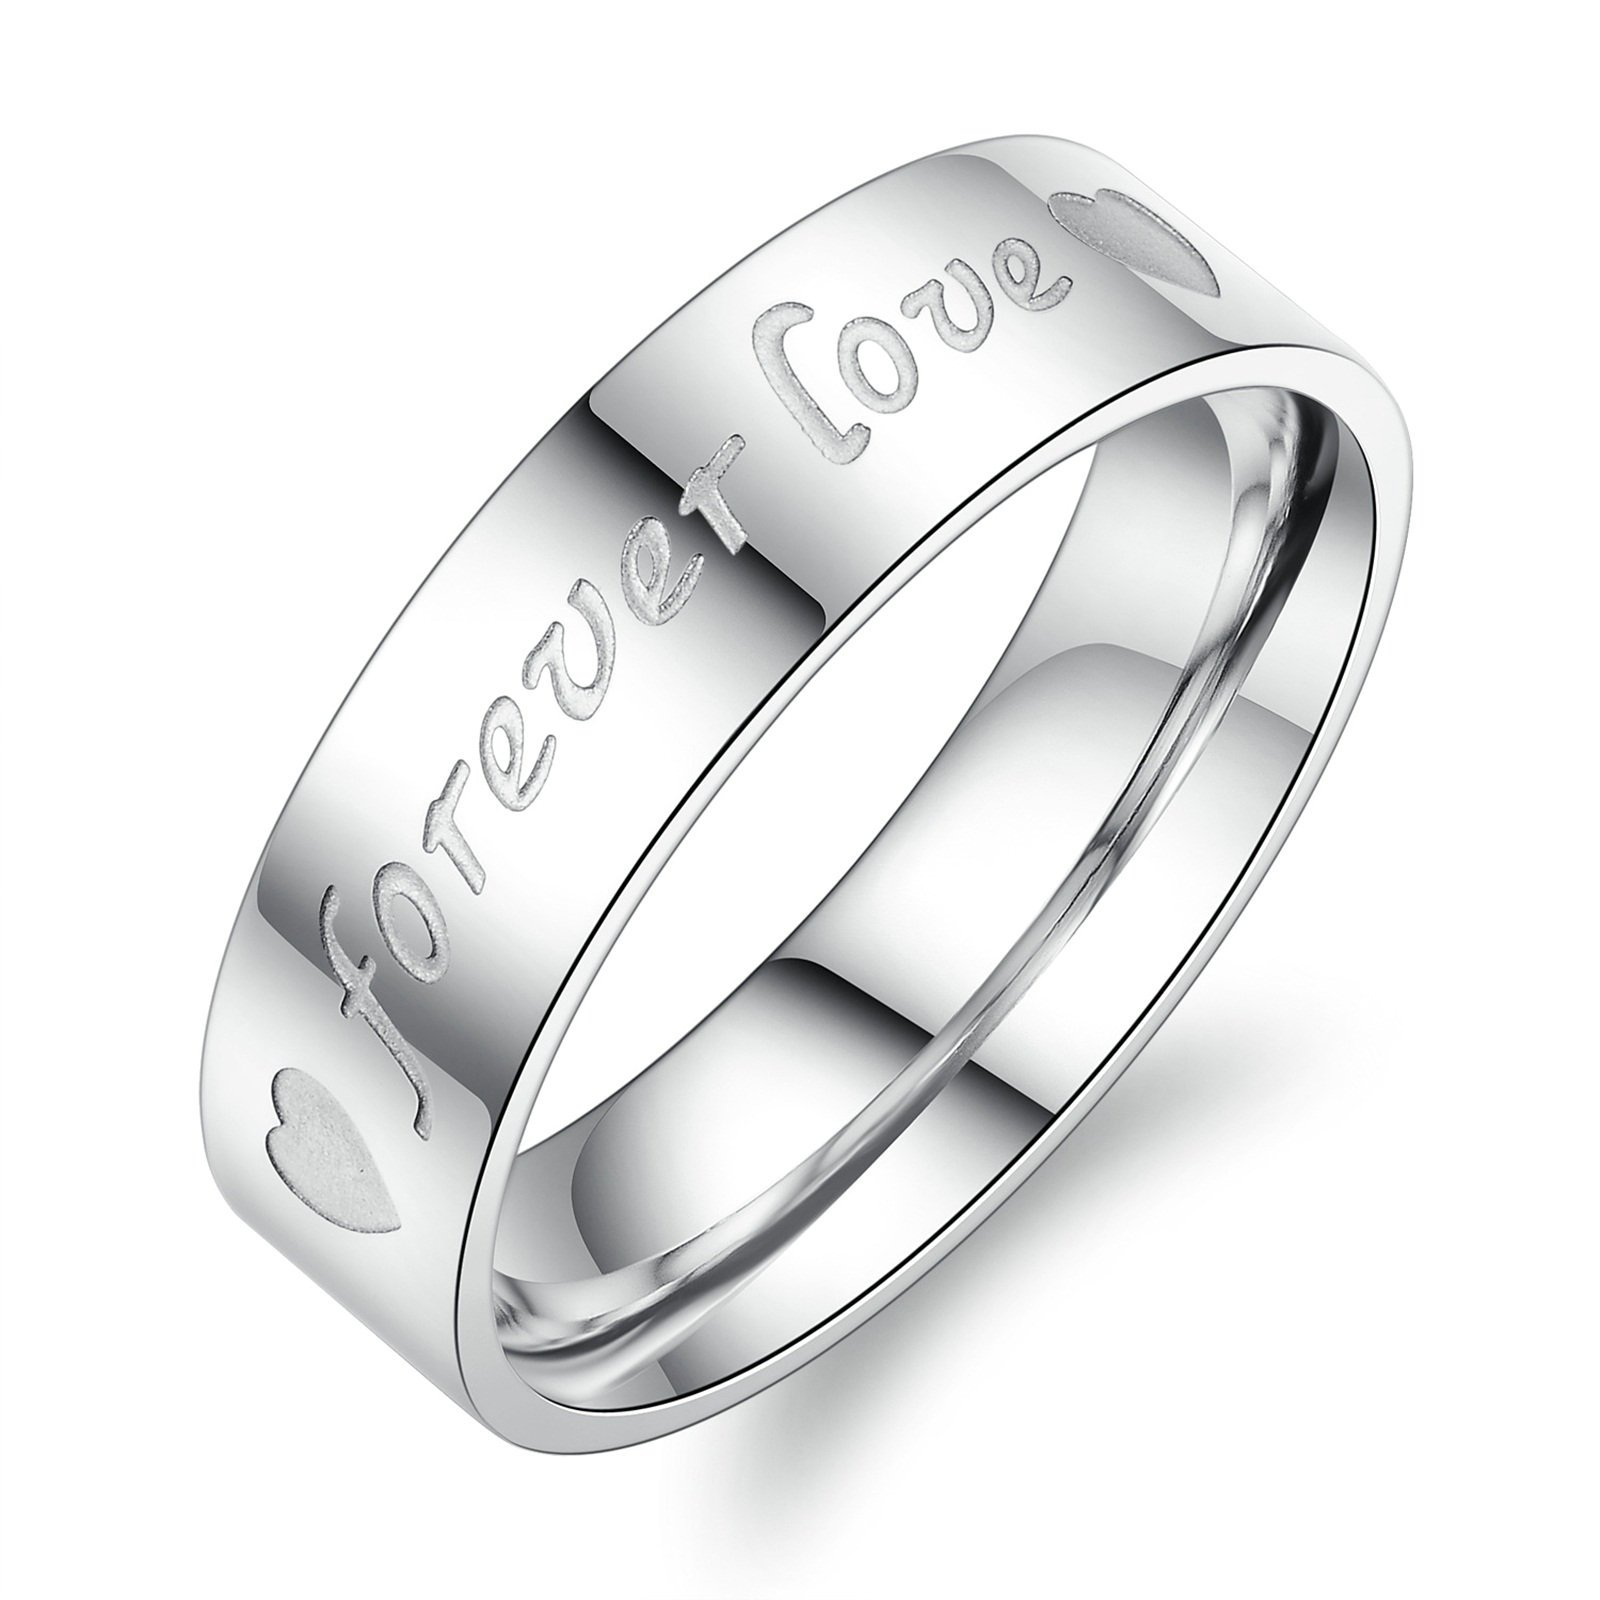 Aooaz 2 Pcs Engagement Rings Stainless Steel Rings For Couples Silver Heart Forever Love Rings With Free Engraving Womens 8 & Mens 7 Novelty Jewelry Gift